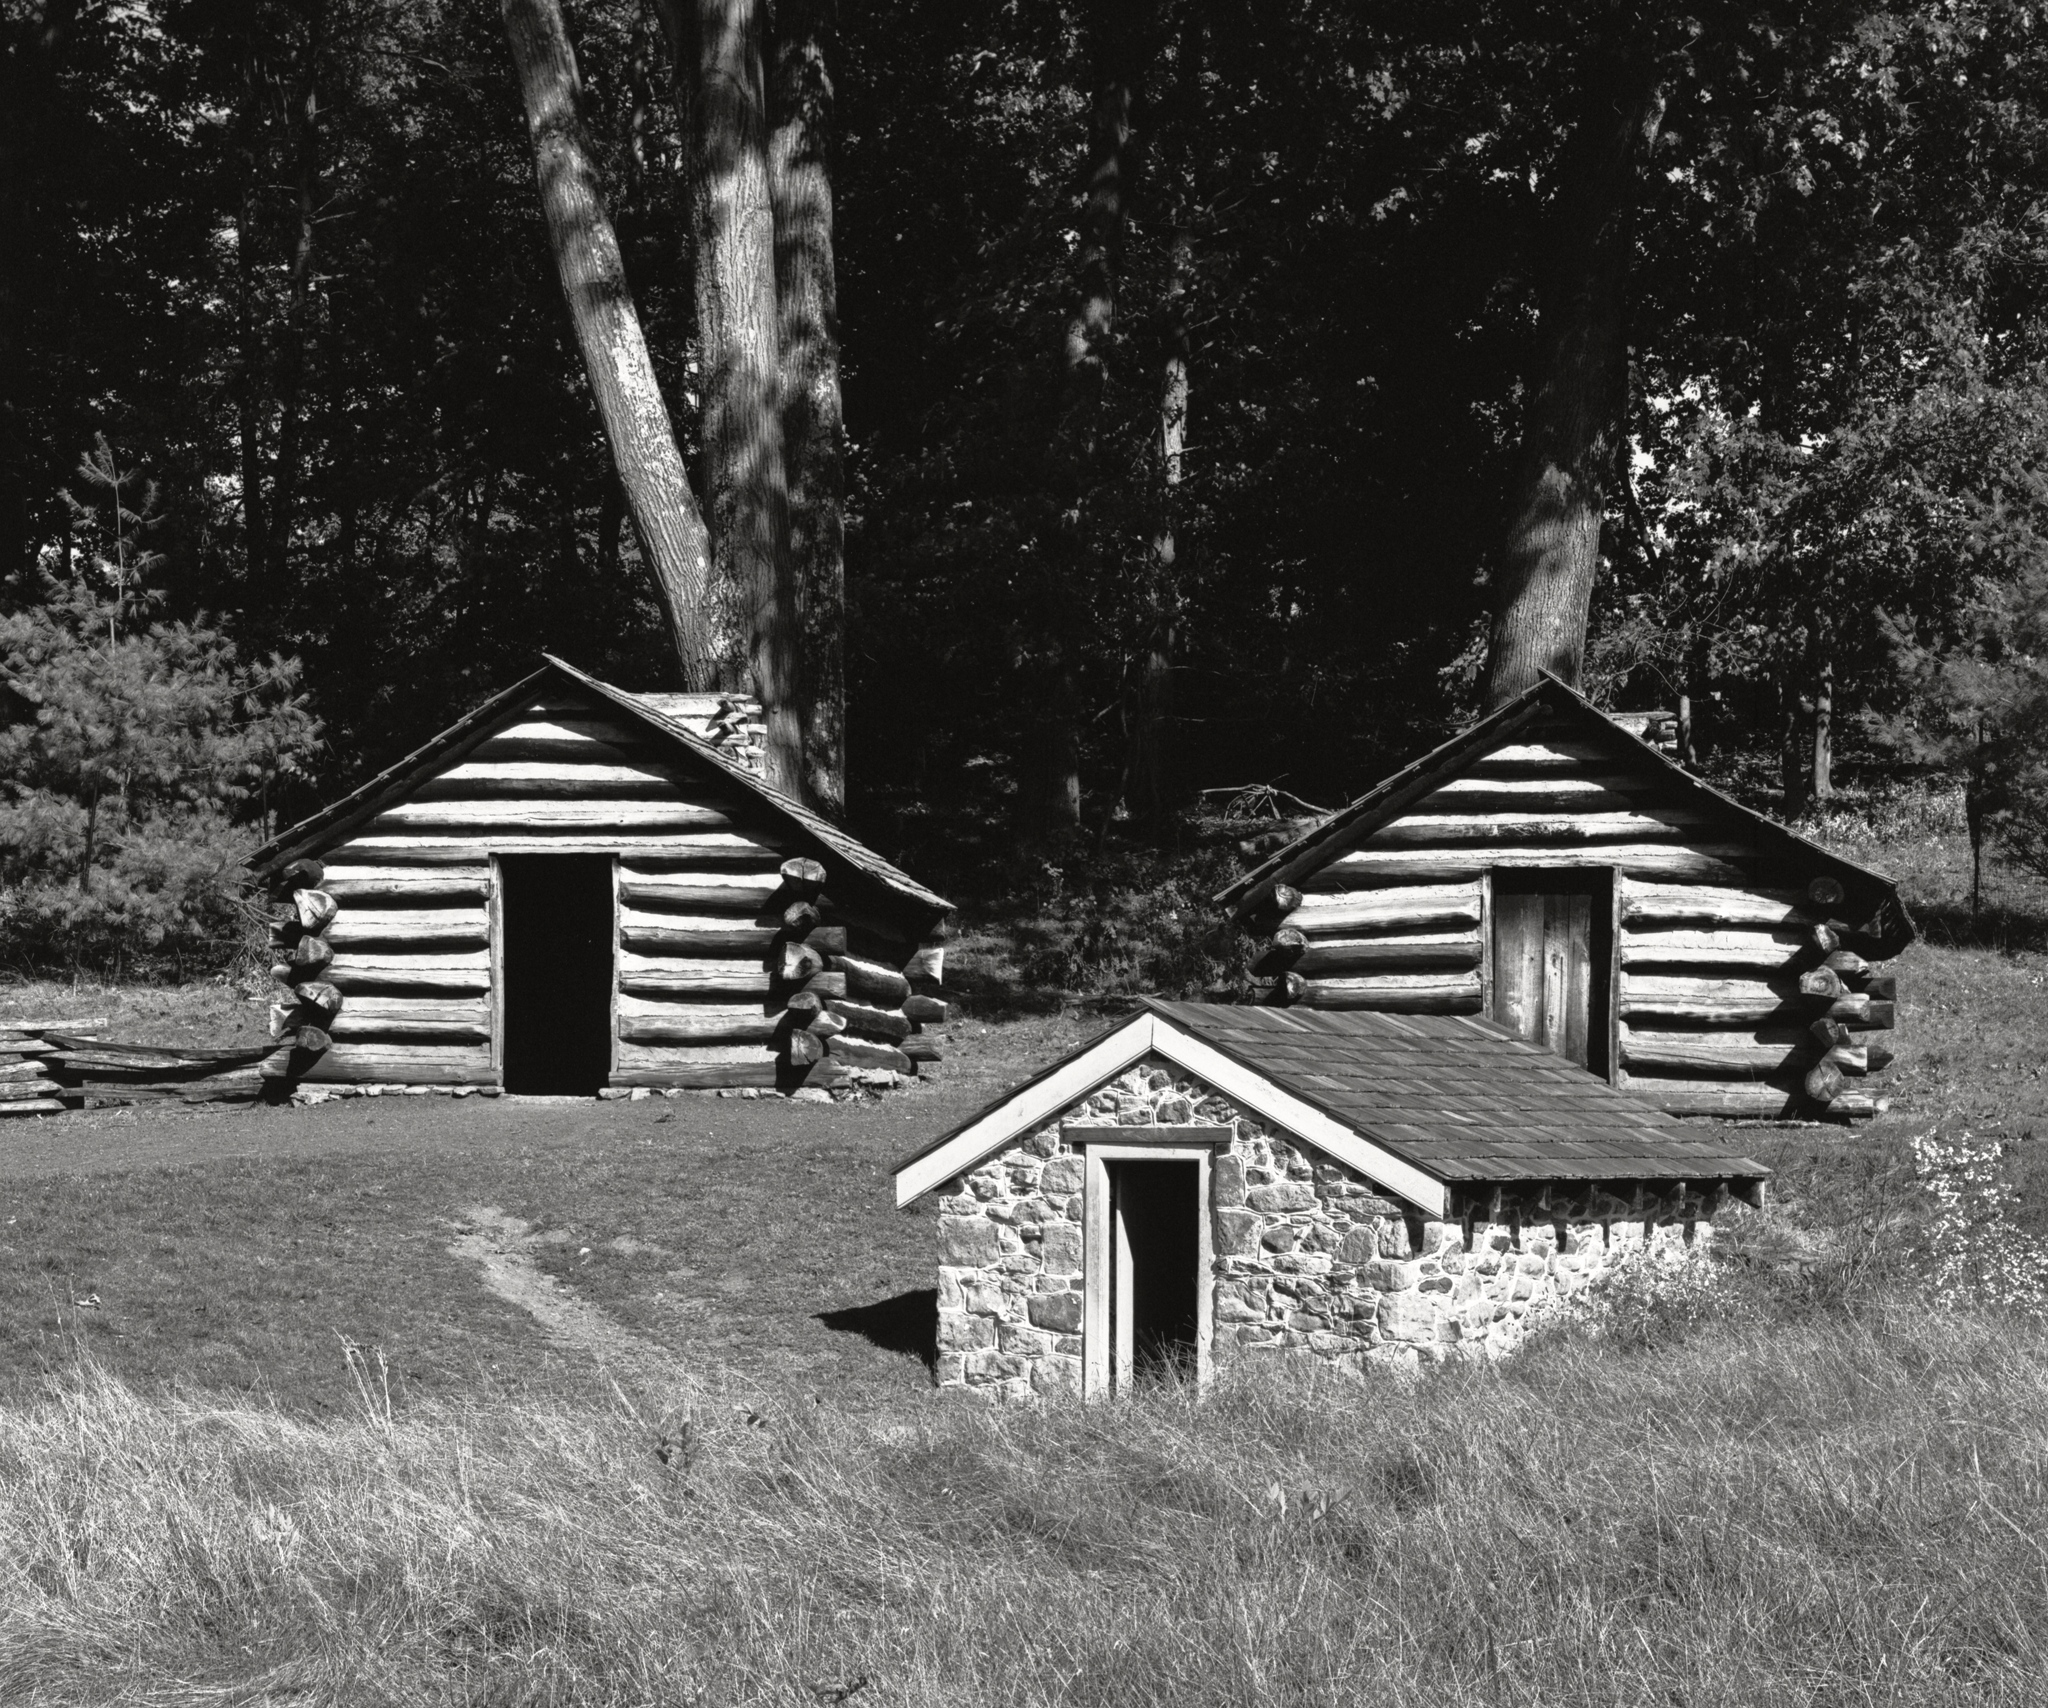 4x5_for_365_project_0287_Valley_Forge_NHS_washingtons_guard_cabins.png